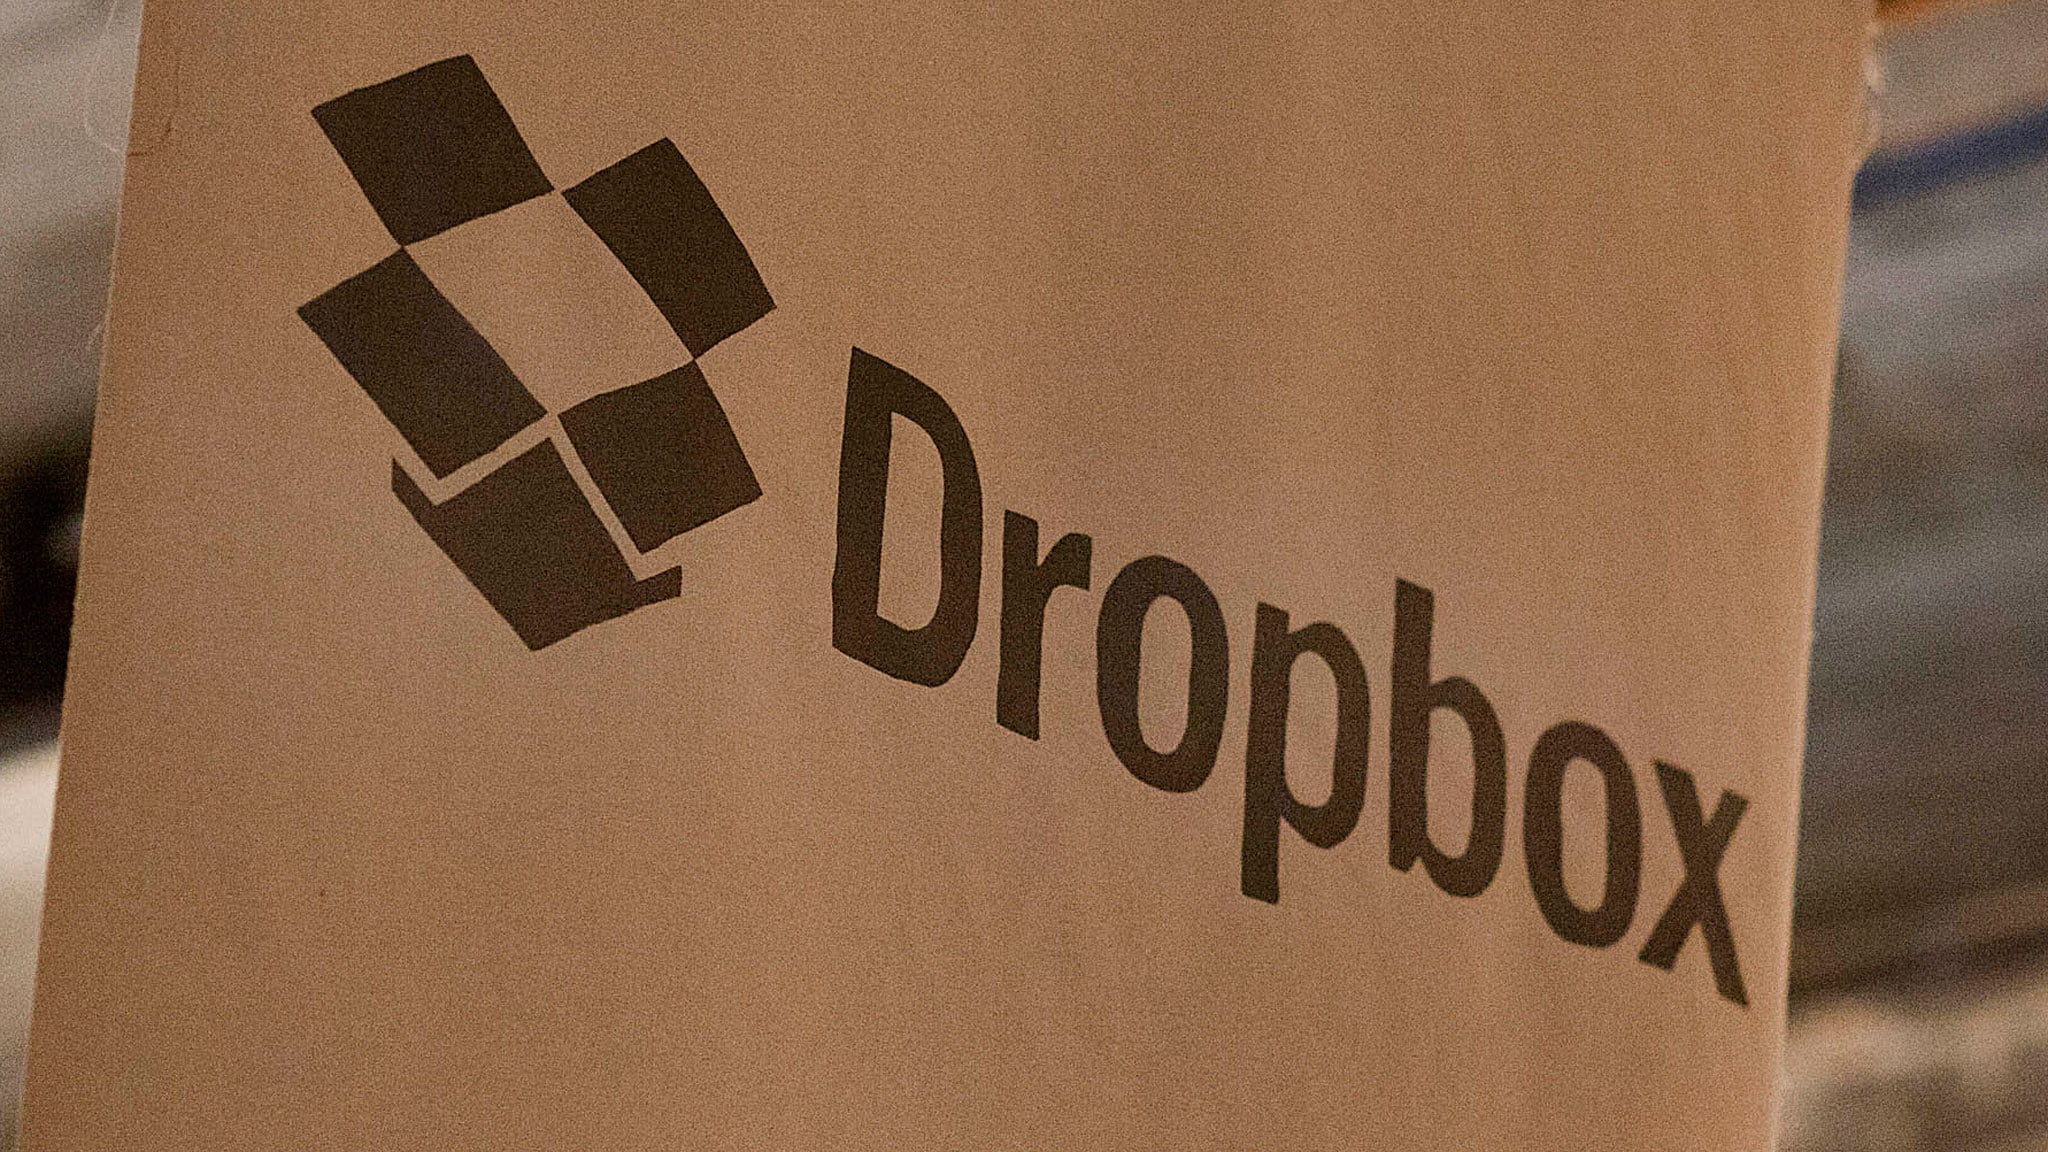 Steve Jobs wanted to take down Dropbox